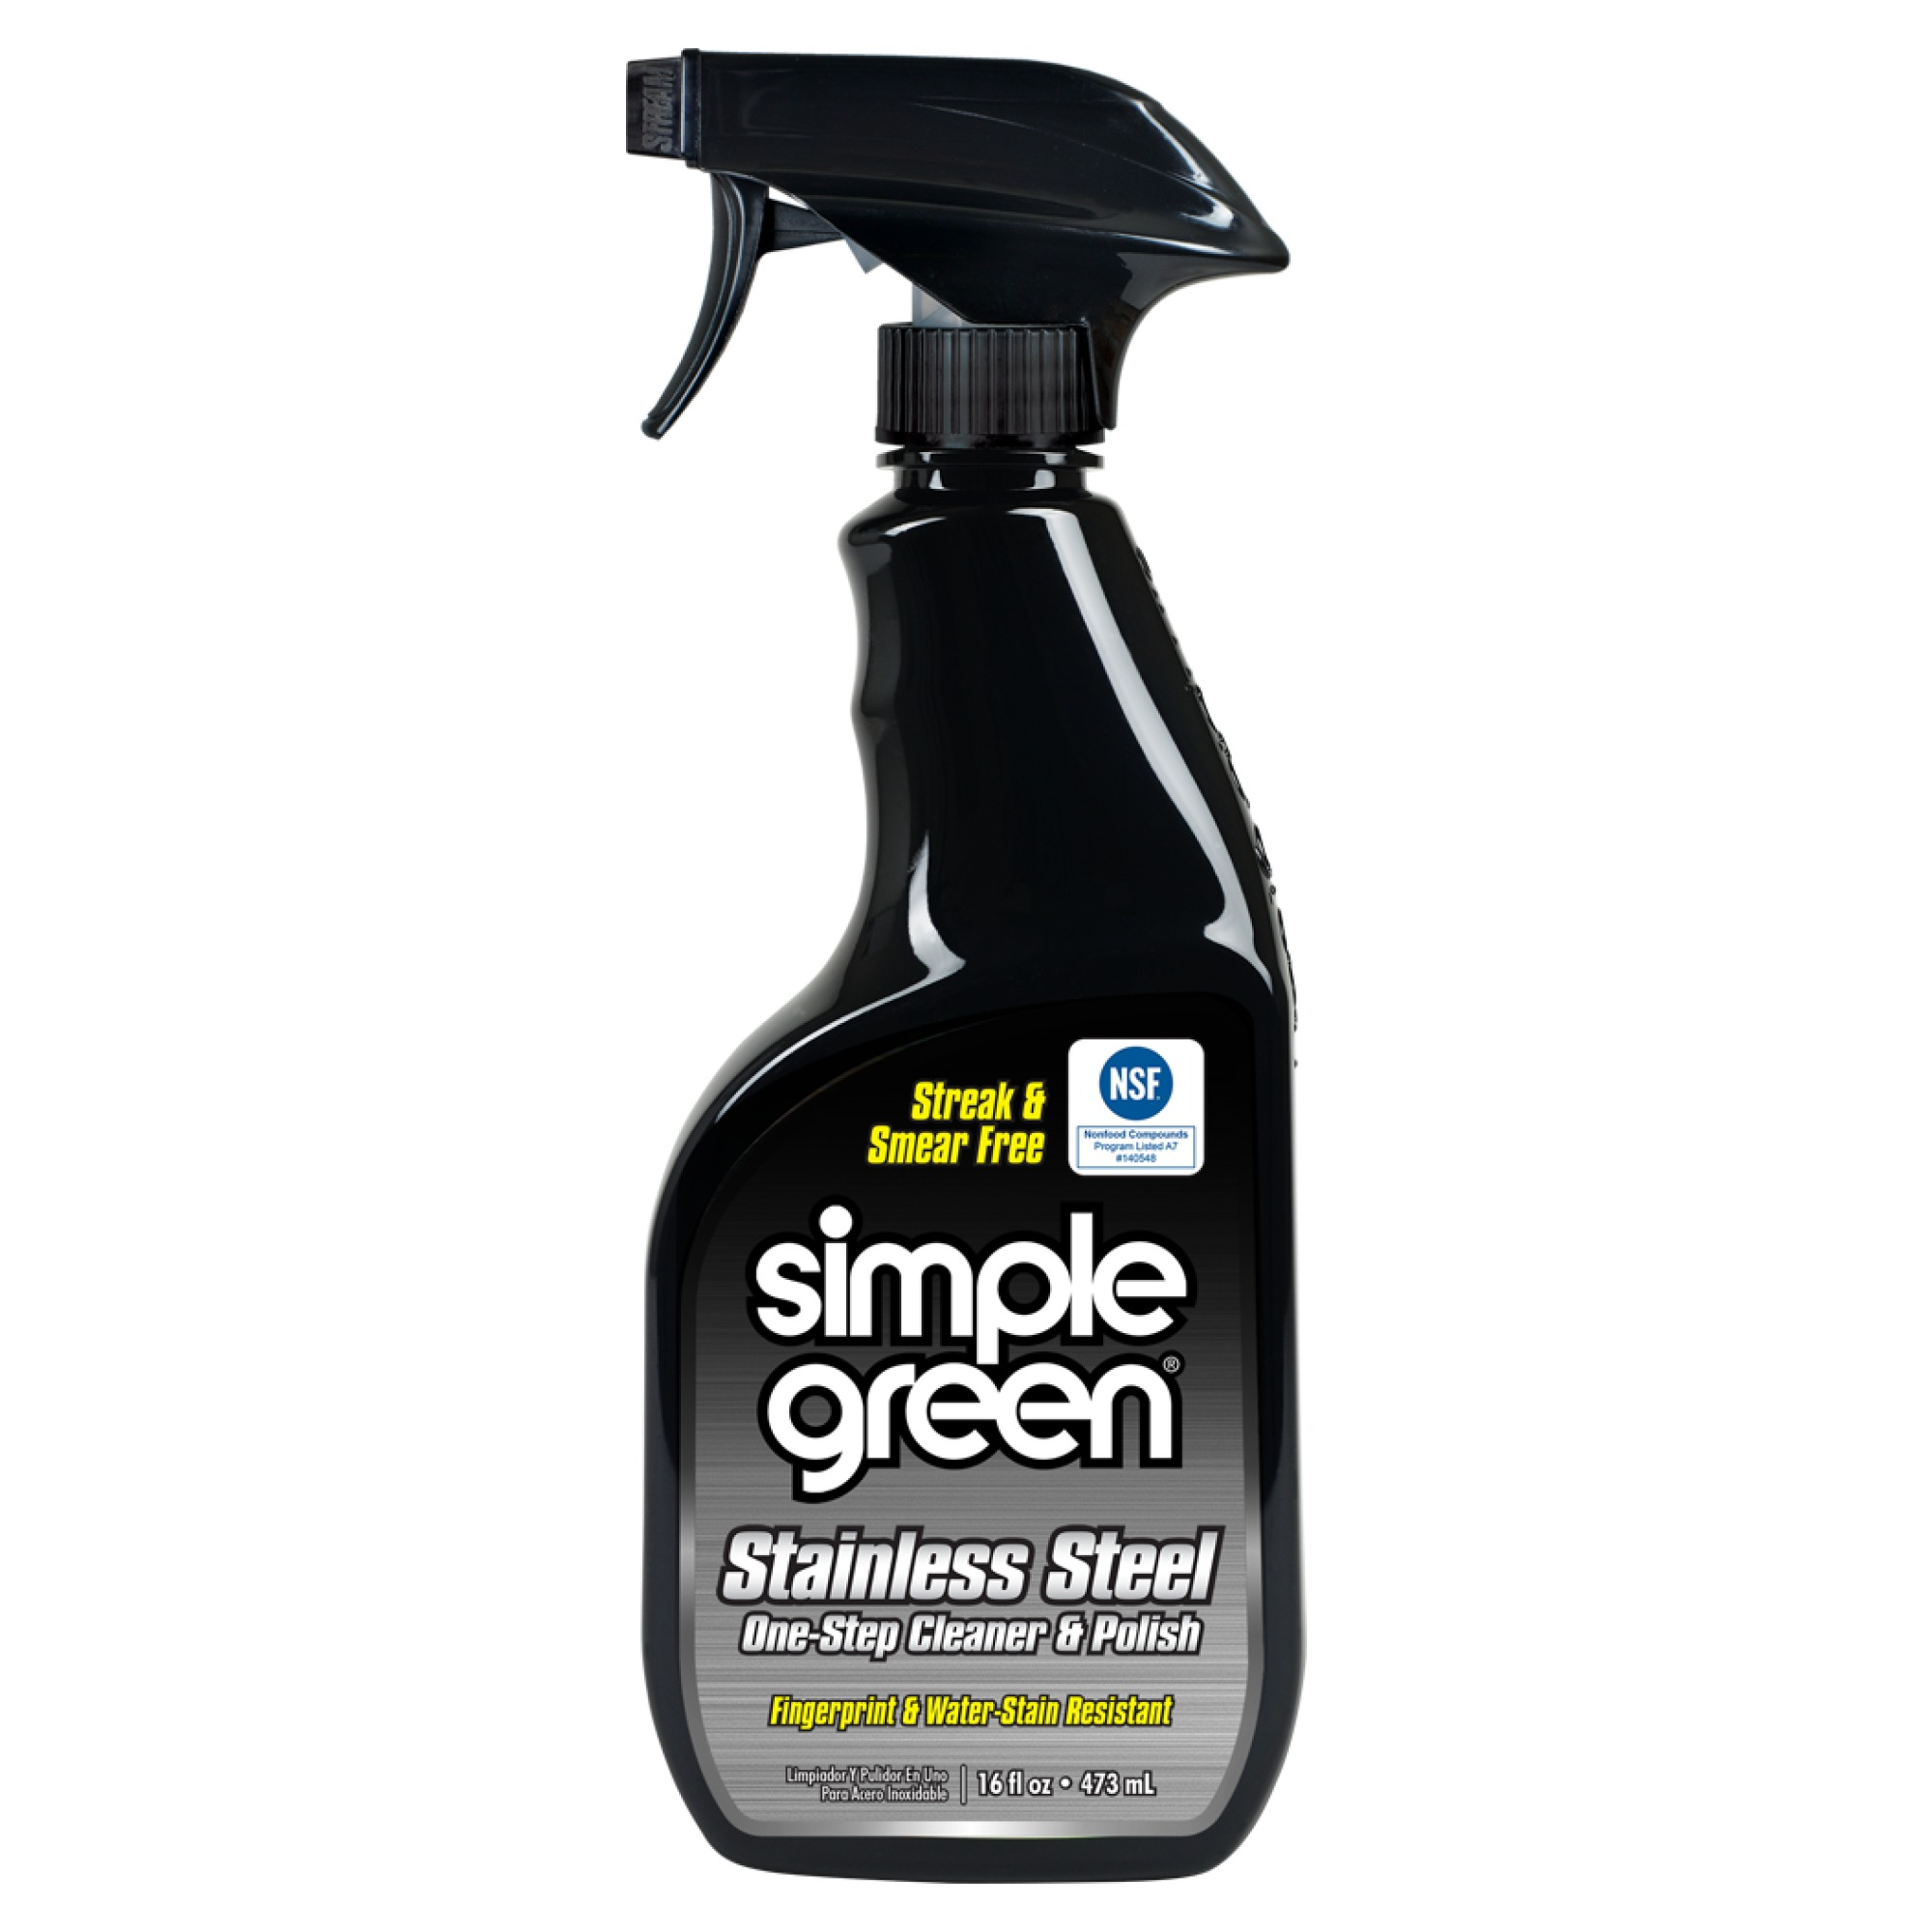 Simple Green Stainless Steel One-Step Cleaner And Polish, 16 Oz